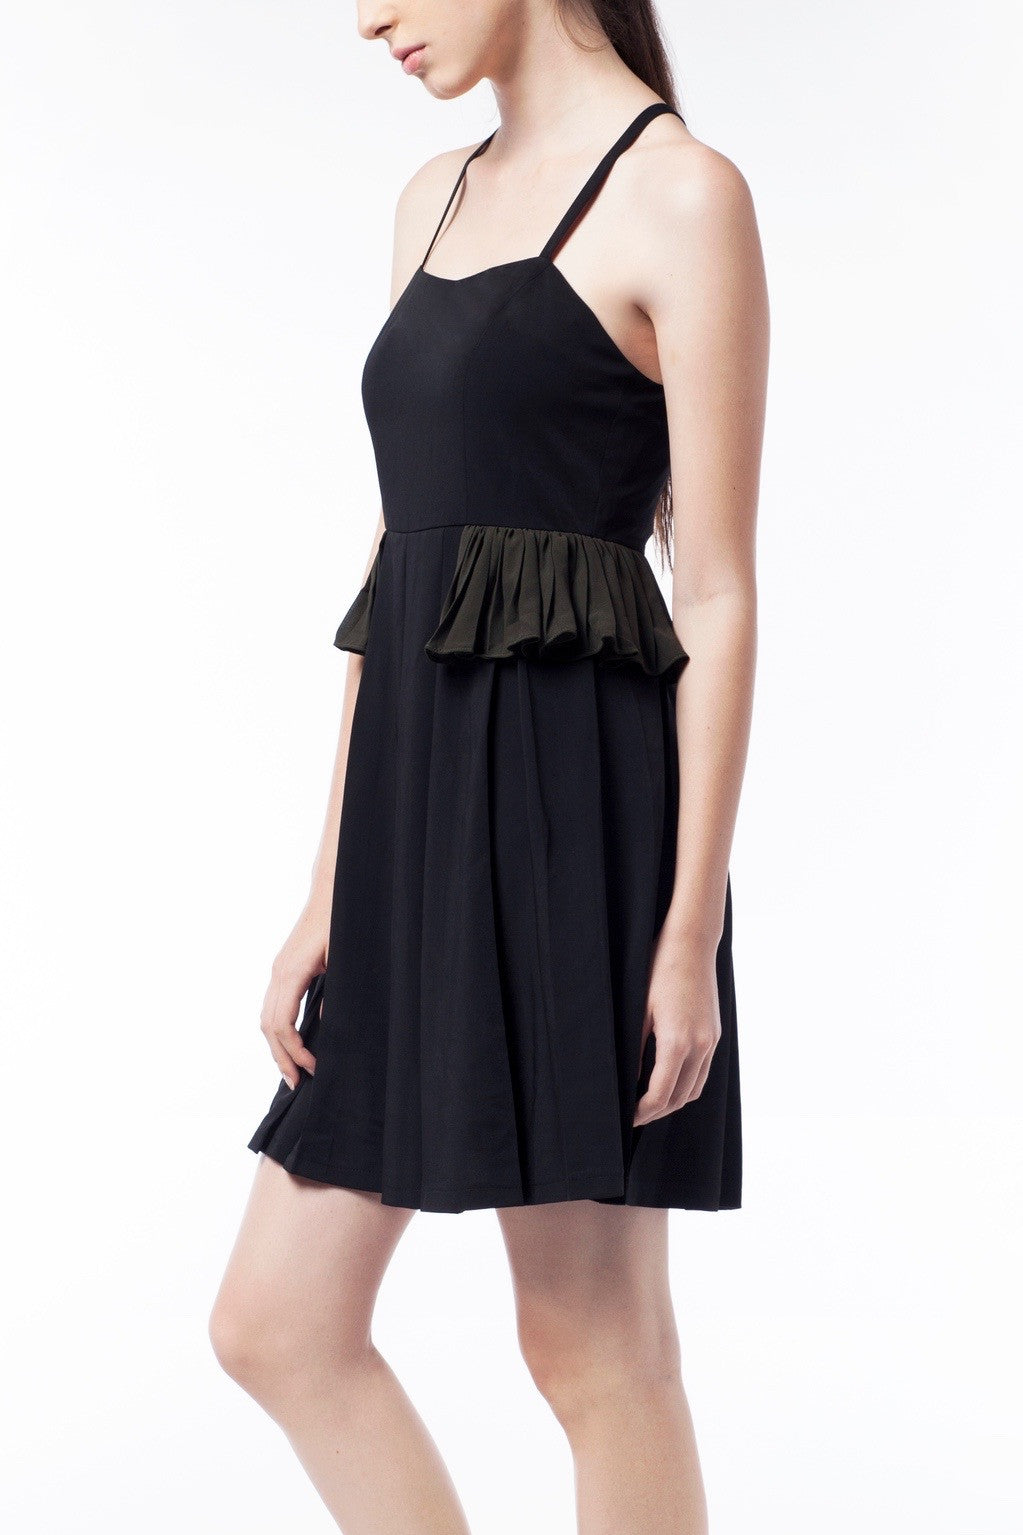 Little Black Dress With Frill - GlanceZ   - 4